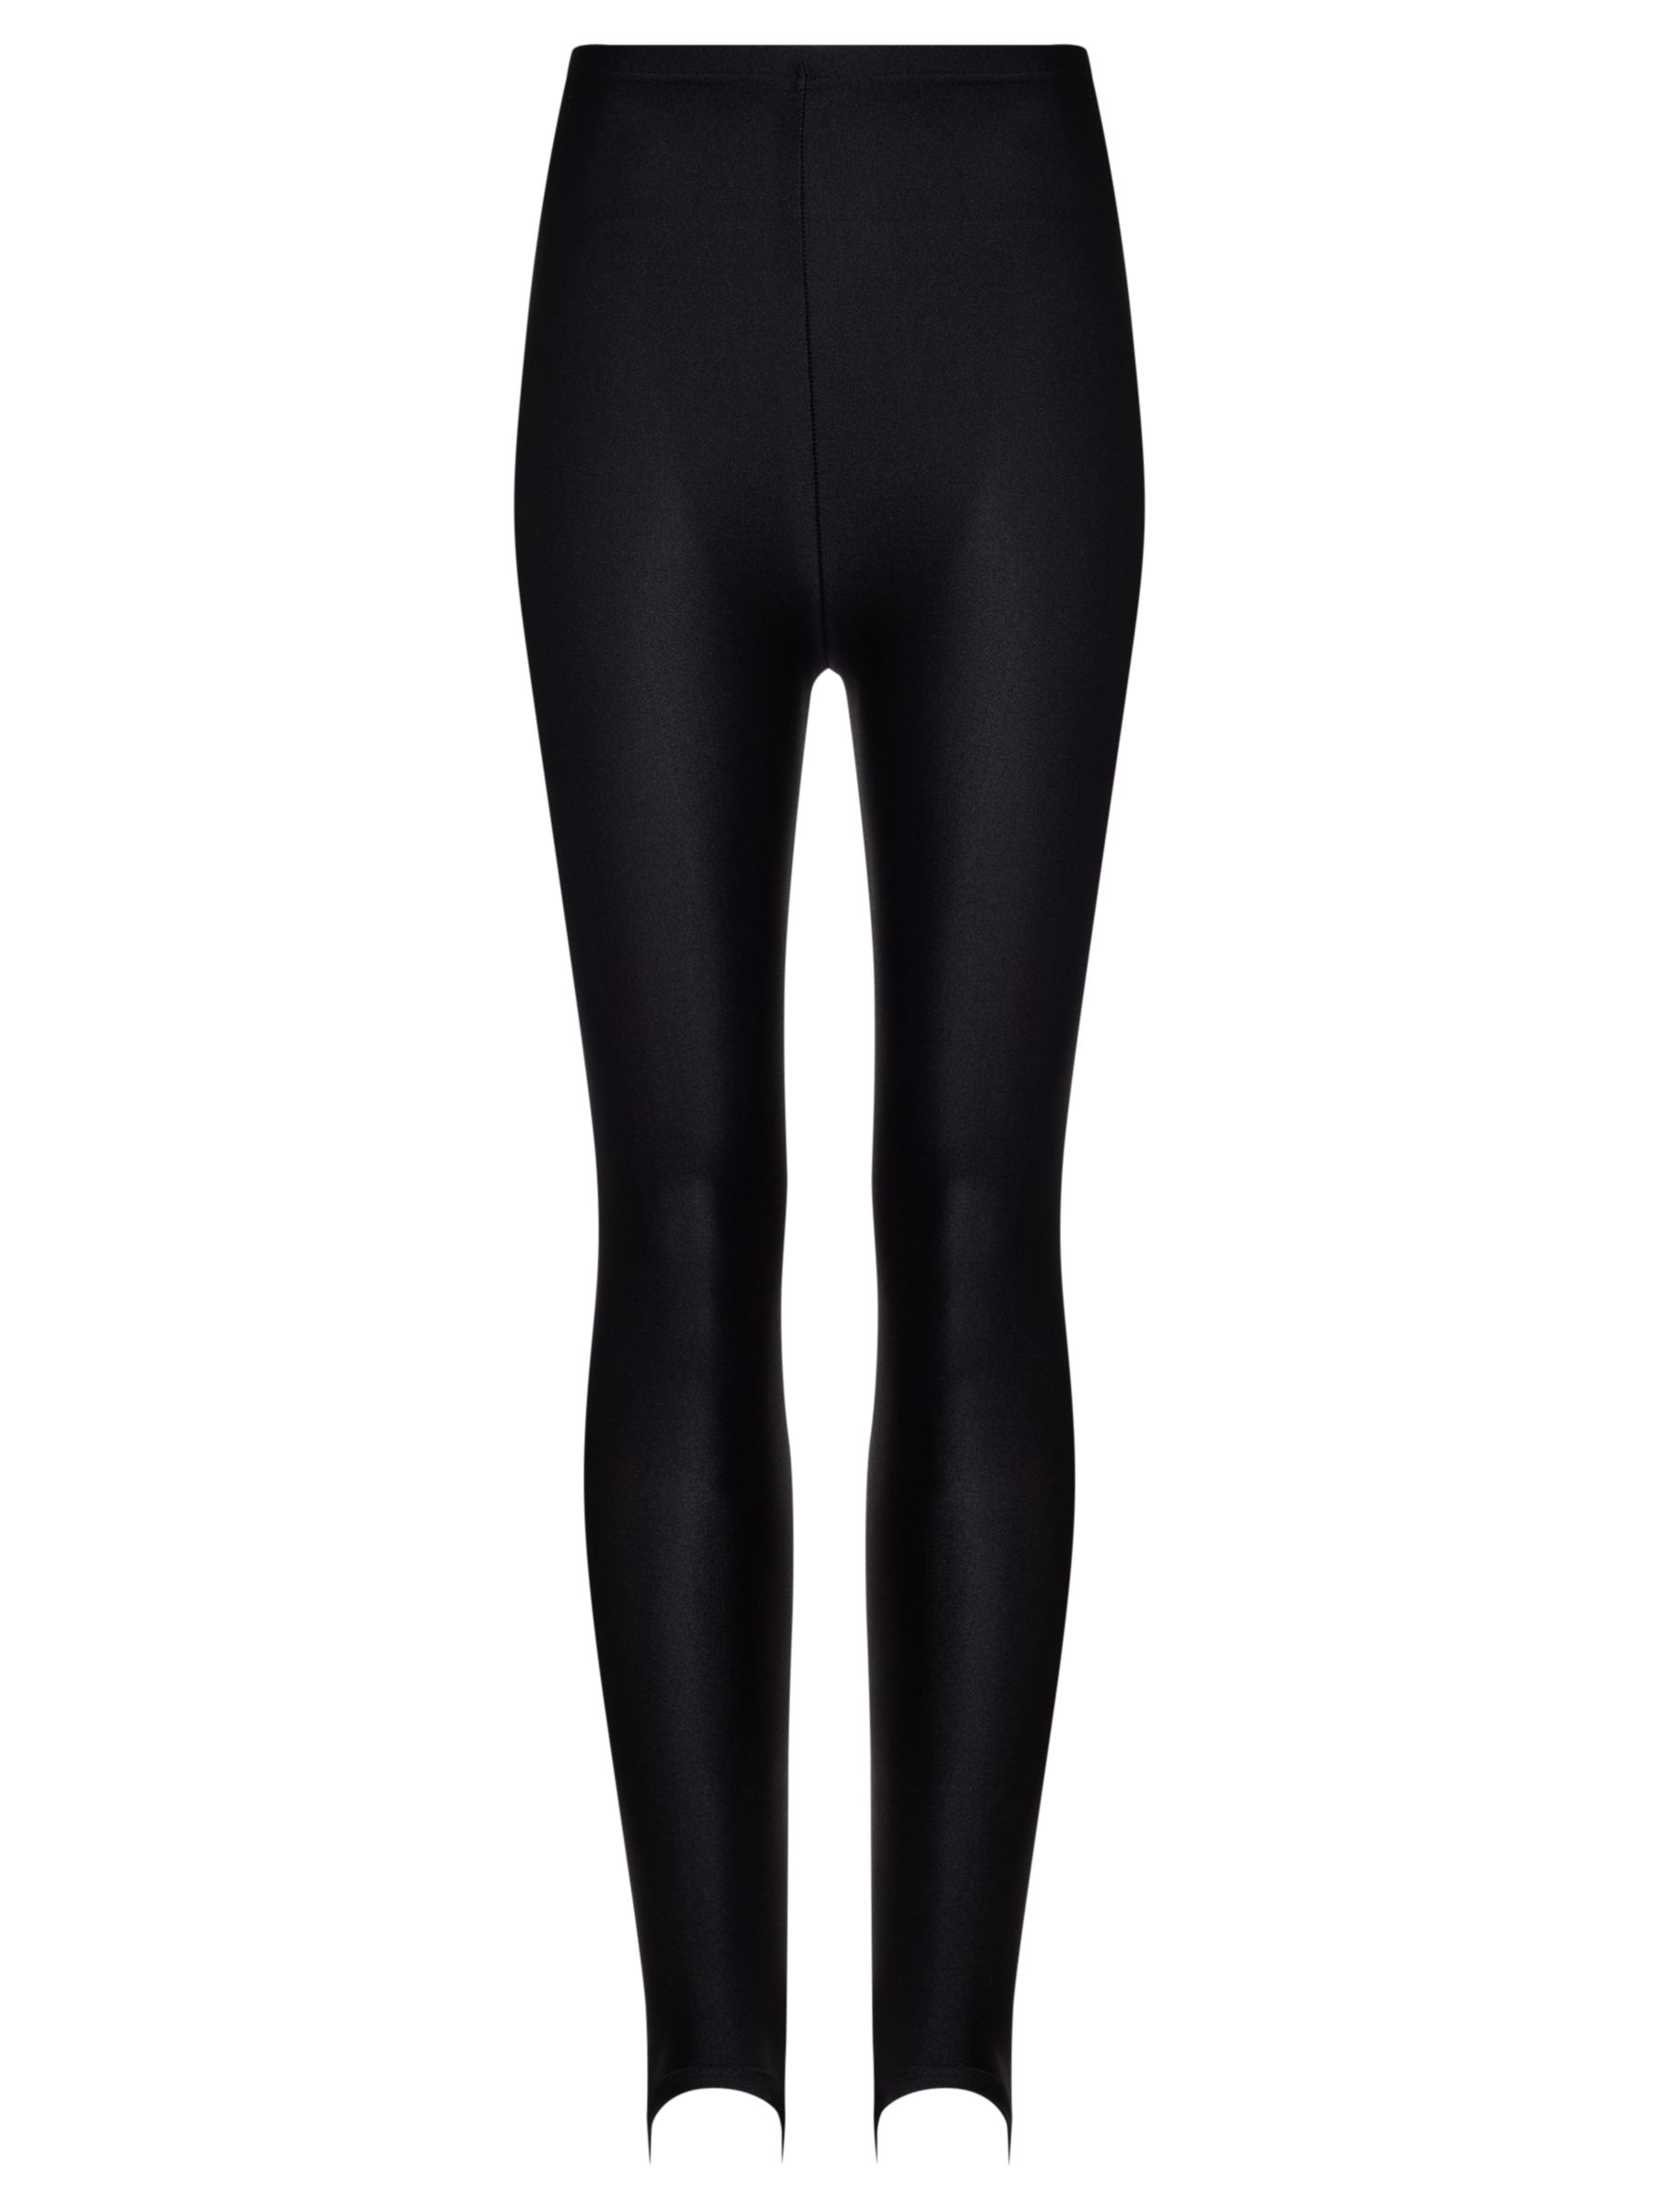 Tappers and Pointers Tappers and Pointers Stirrup Tights, Black